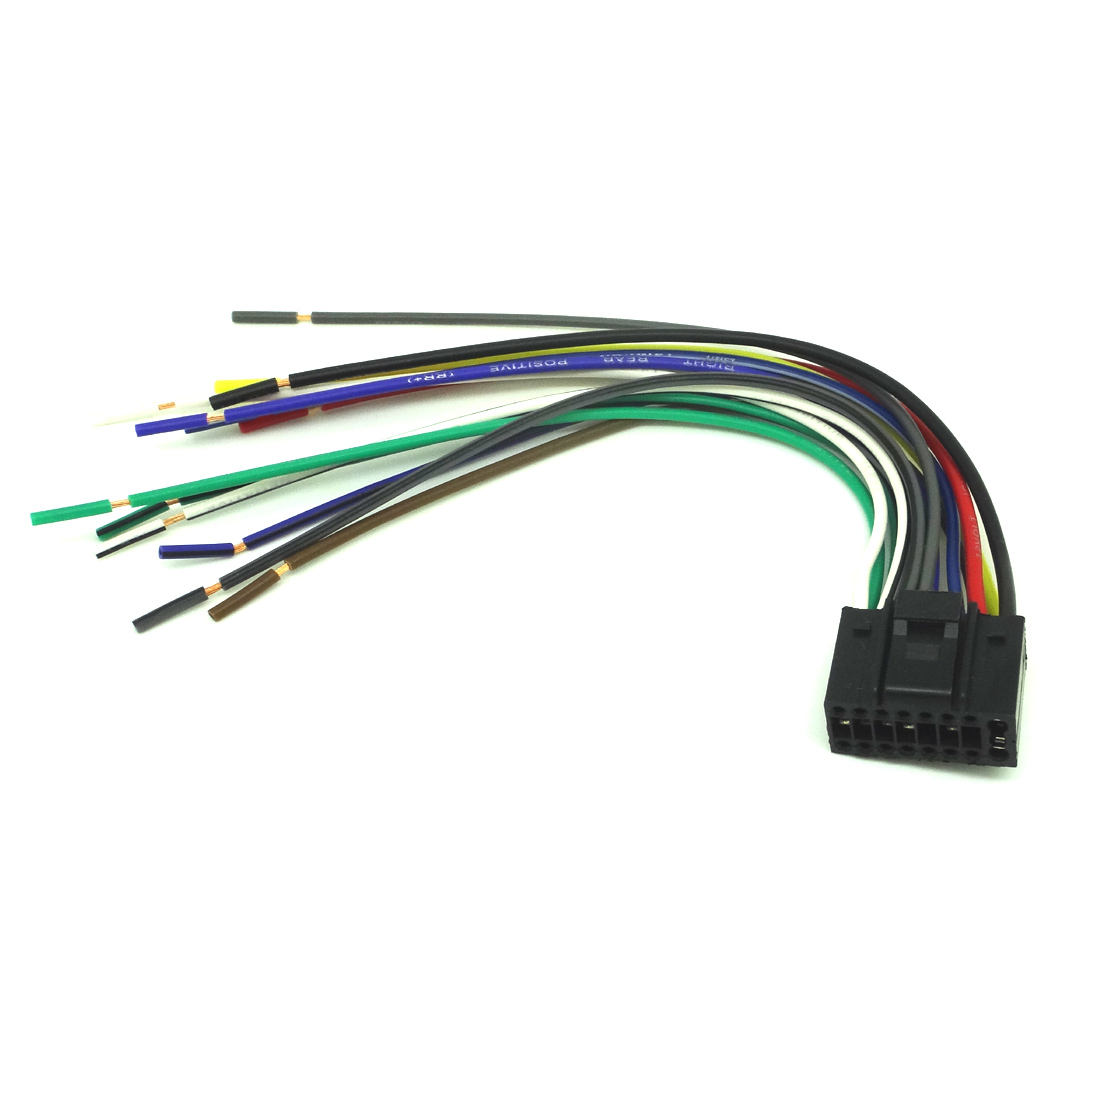 Kenwood Excelon Ddx7015 Wiring Harness 38 Diagram Images Car Stereo Diagrams Radio Player 16 Pin Audio Wire For Ddx6017 Ddx770 Ddx790 Dnn770hd